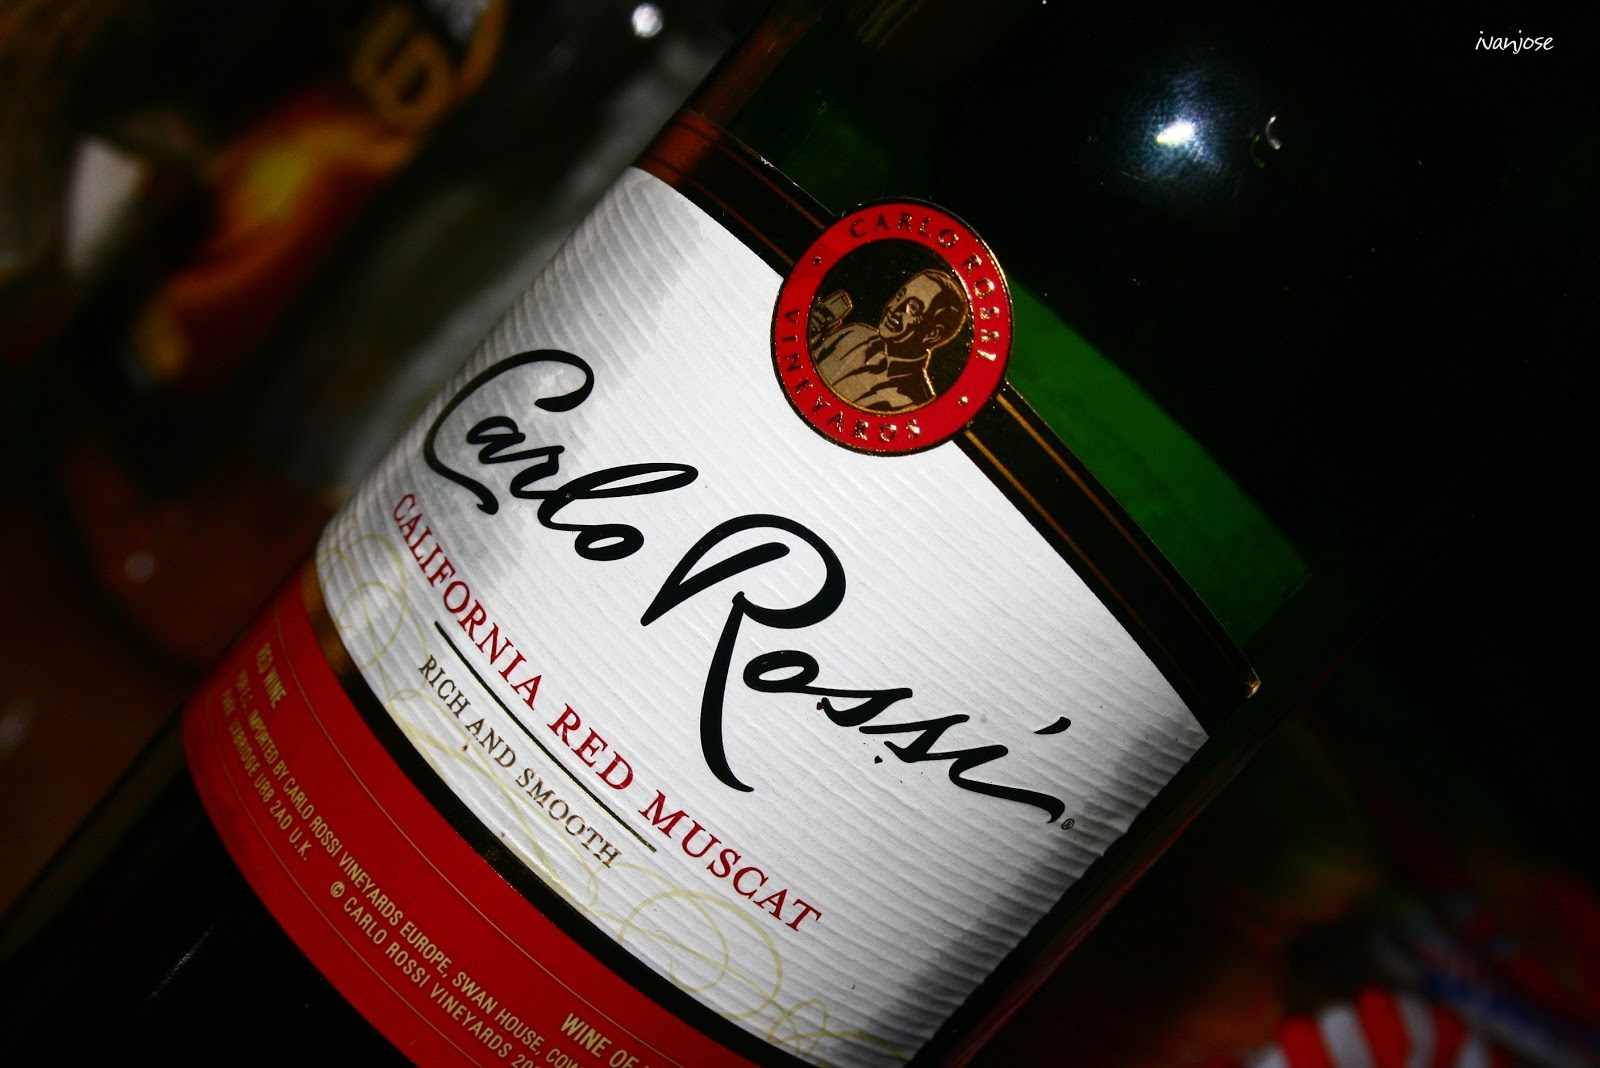 A bottle of wine to celebrate the new year 2012